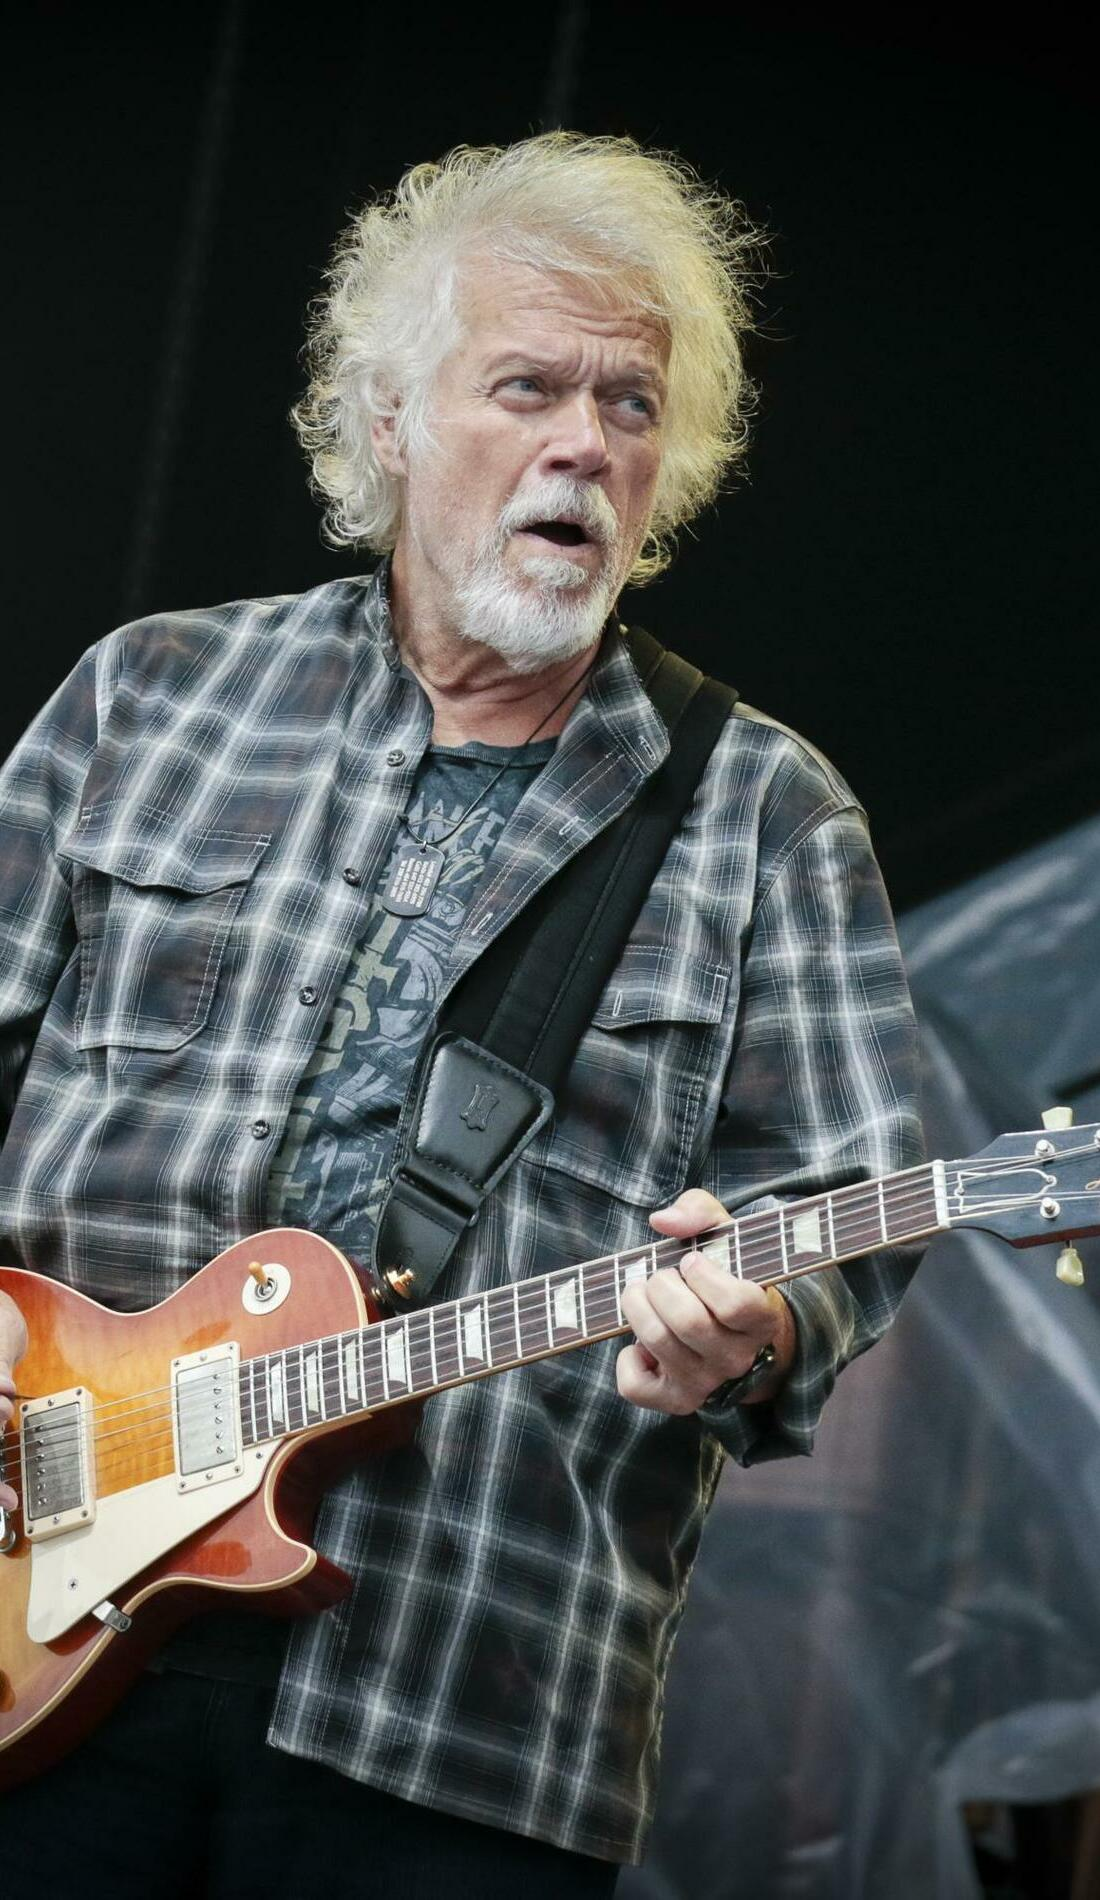 A Randy Bachman live event